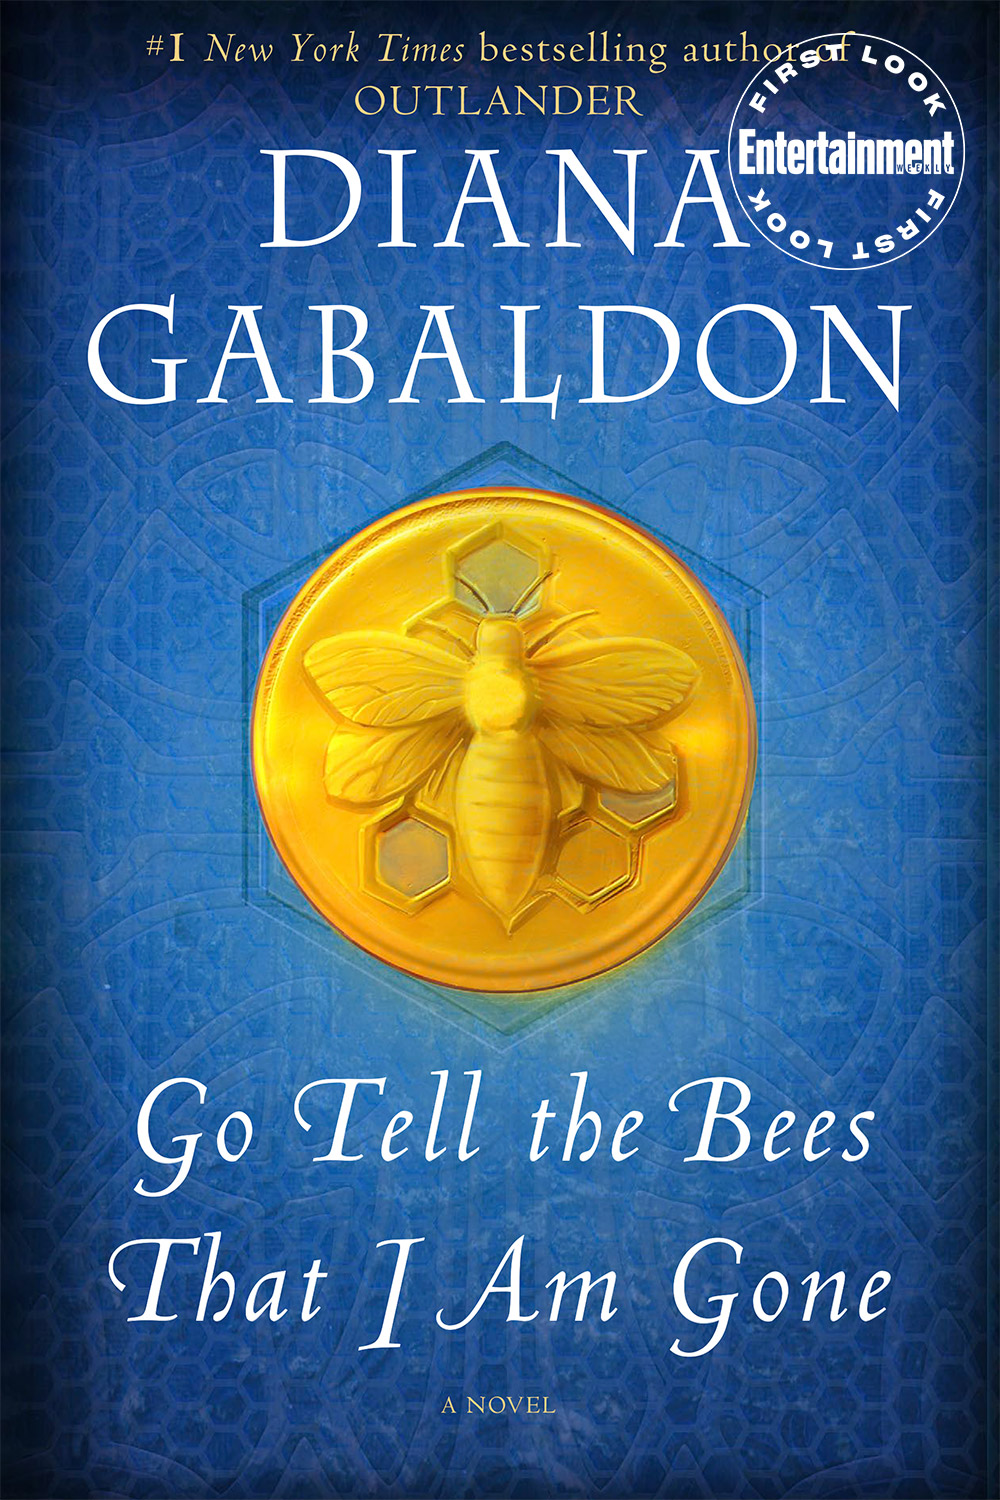 Go Tell The Bees that I am gone by Diana Gabaldon